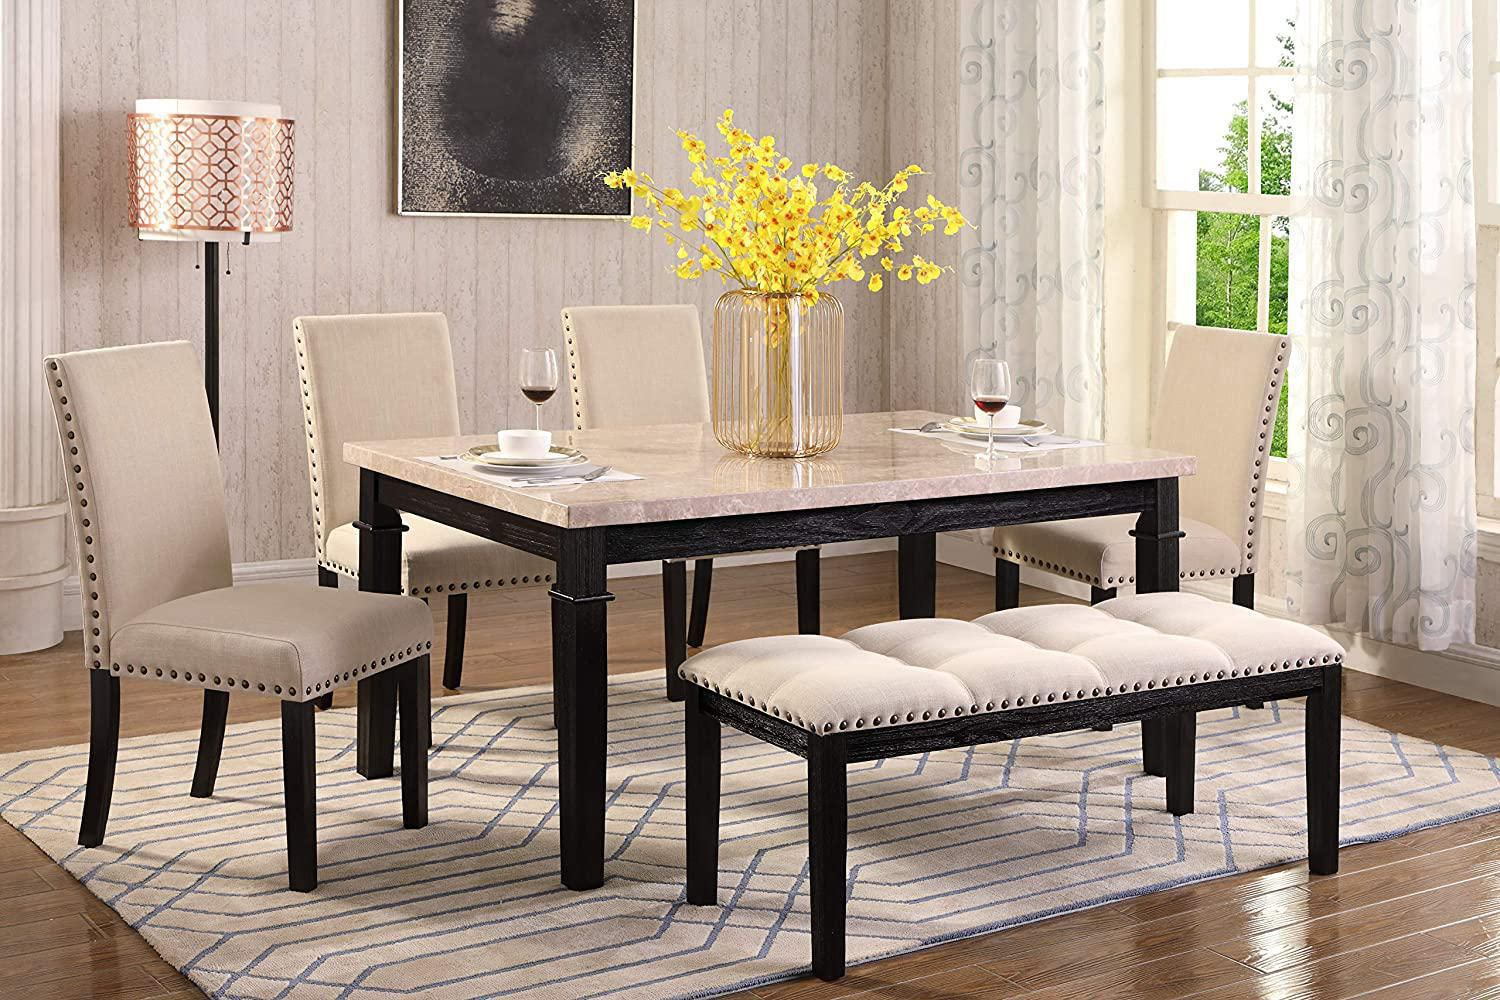 K Living Nancy Real Marble Top Dining, Marble Top Dining Room Table